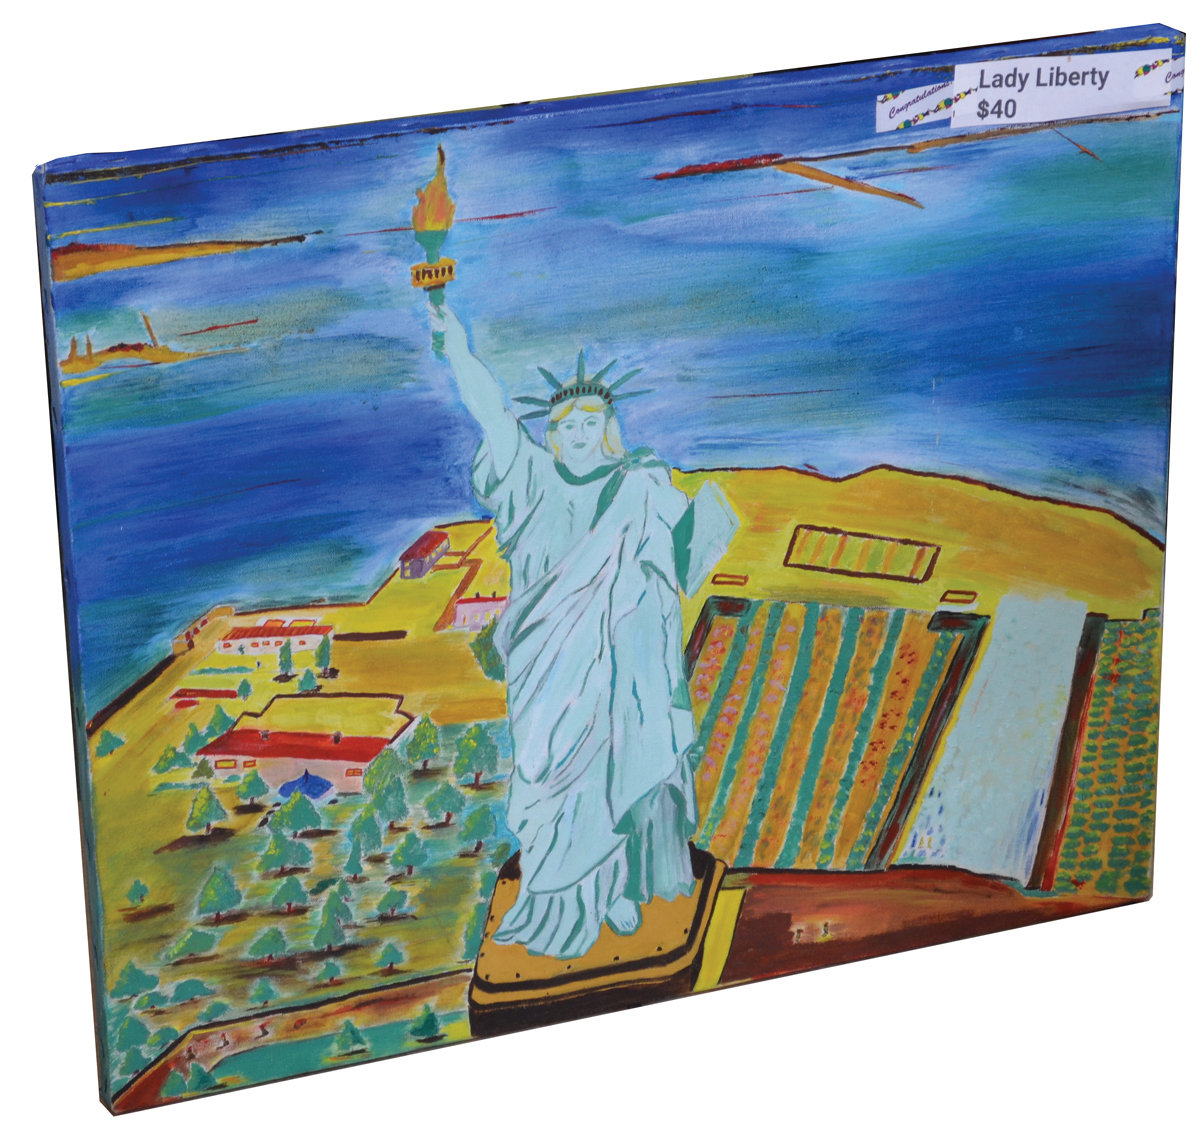 GLORIA'S GALLERY: Johnston's Gloria Renzi, 78, showed off some of her artwork at the Johnston Senior Center last Thursday, with paintings such as this one of the Statue of Liberty.